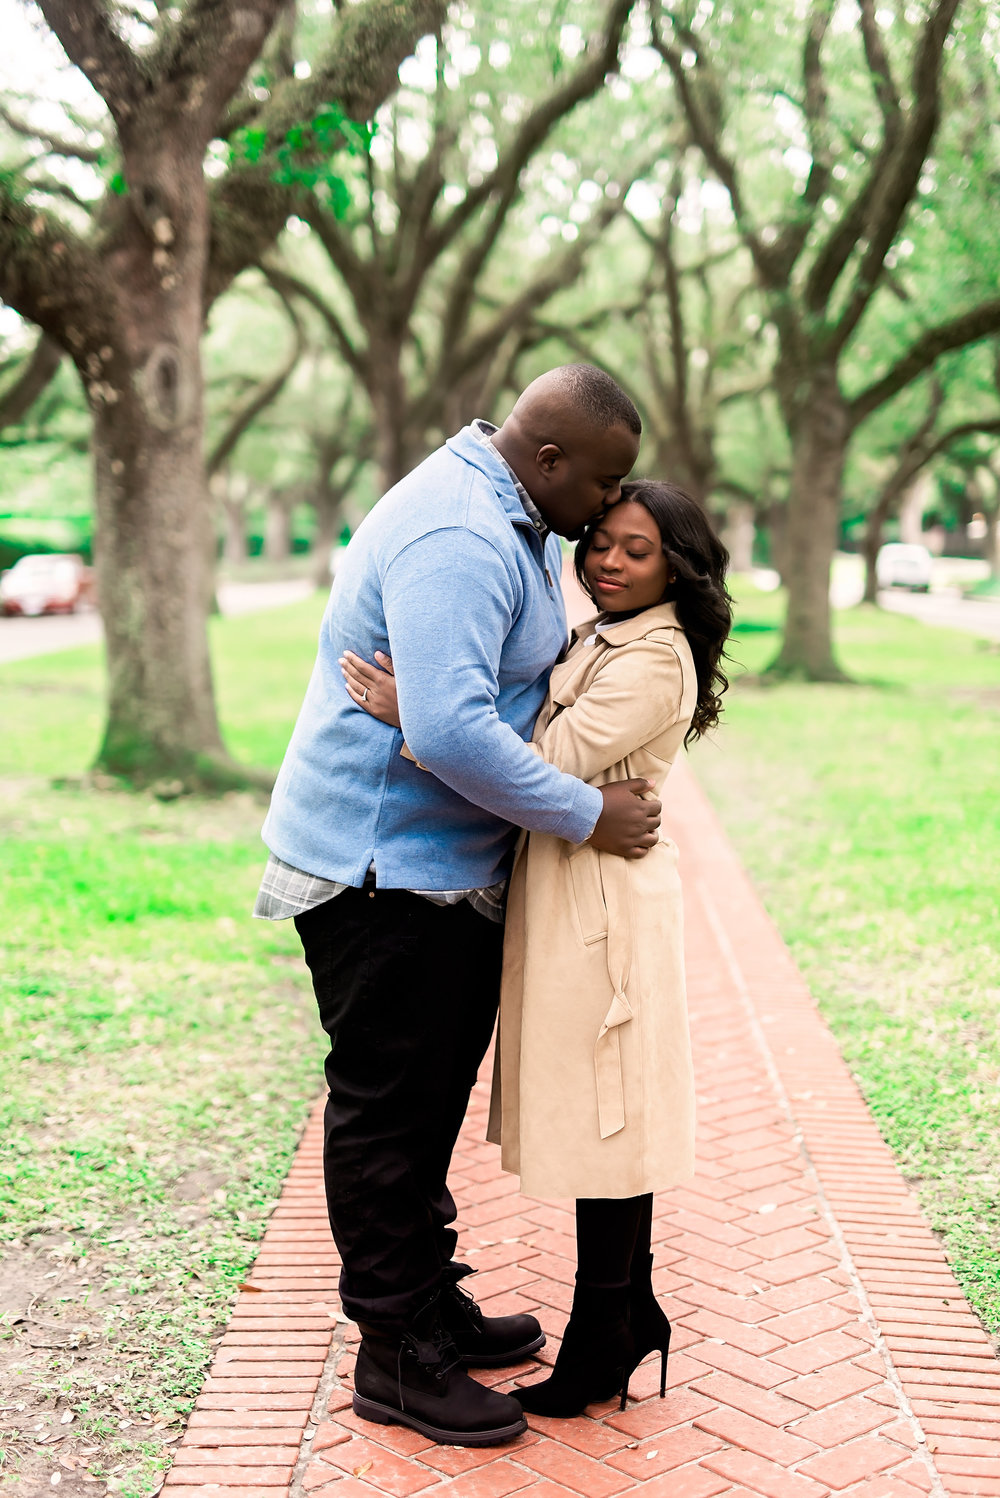 Evan-Meghan-Pharris-Photography-engagement-Photoshoot-11.jpg